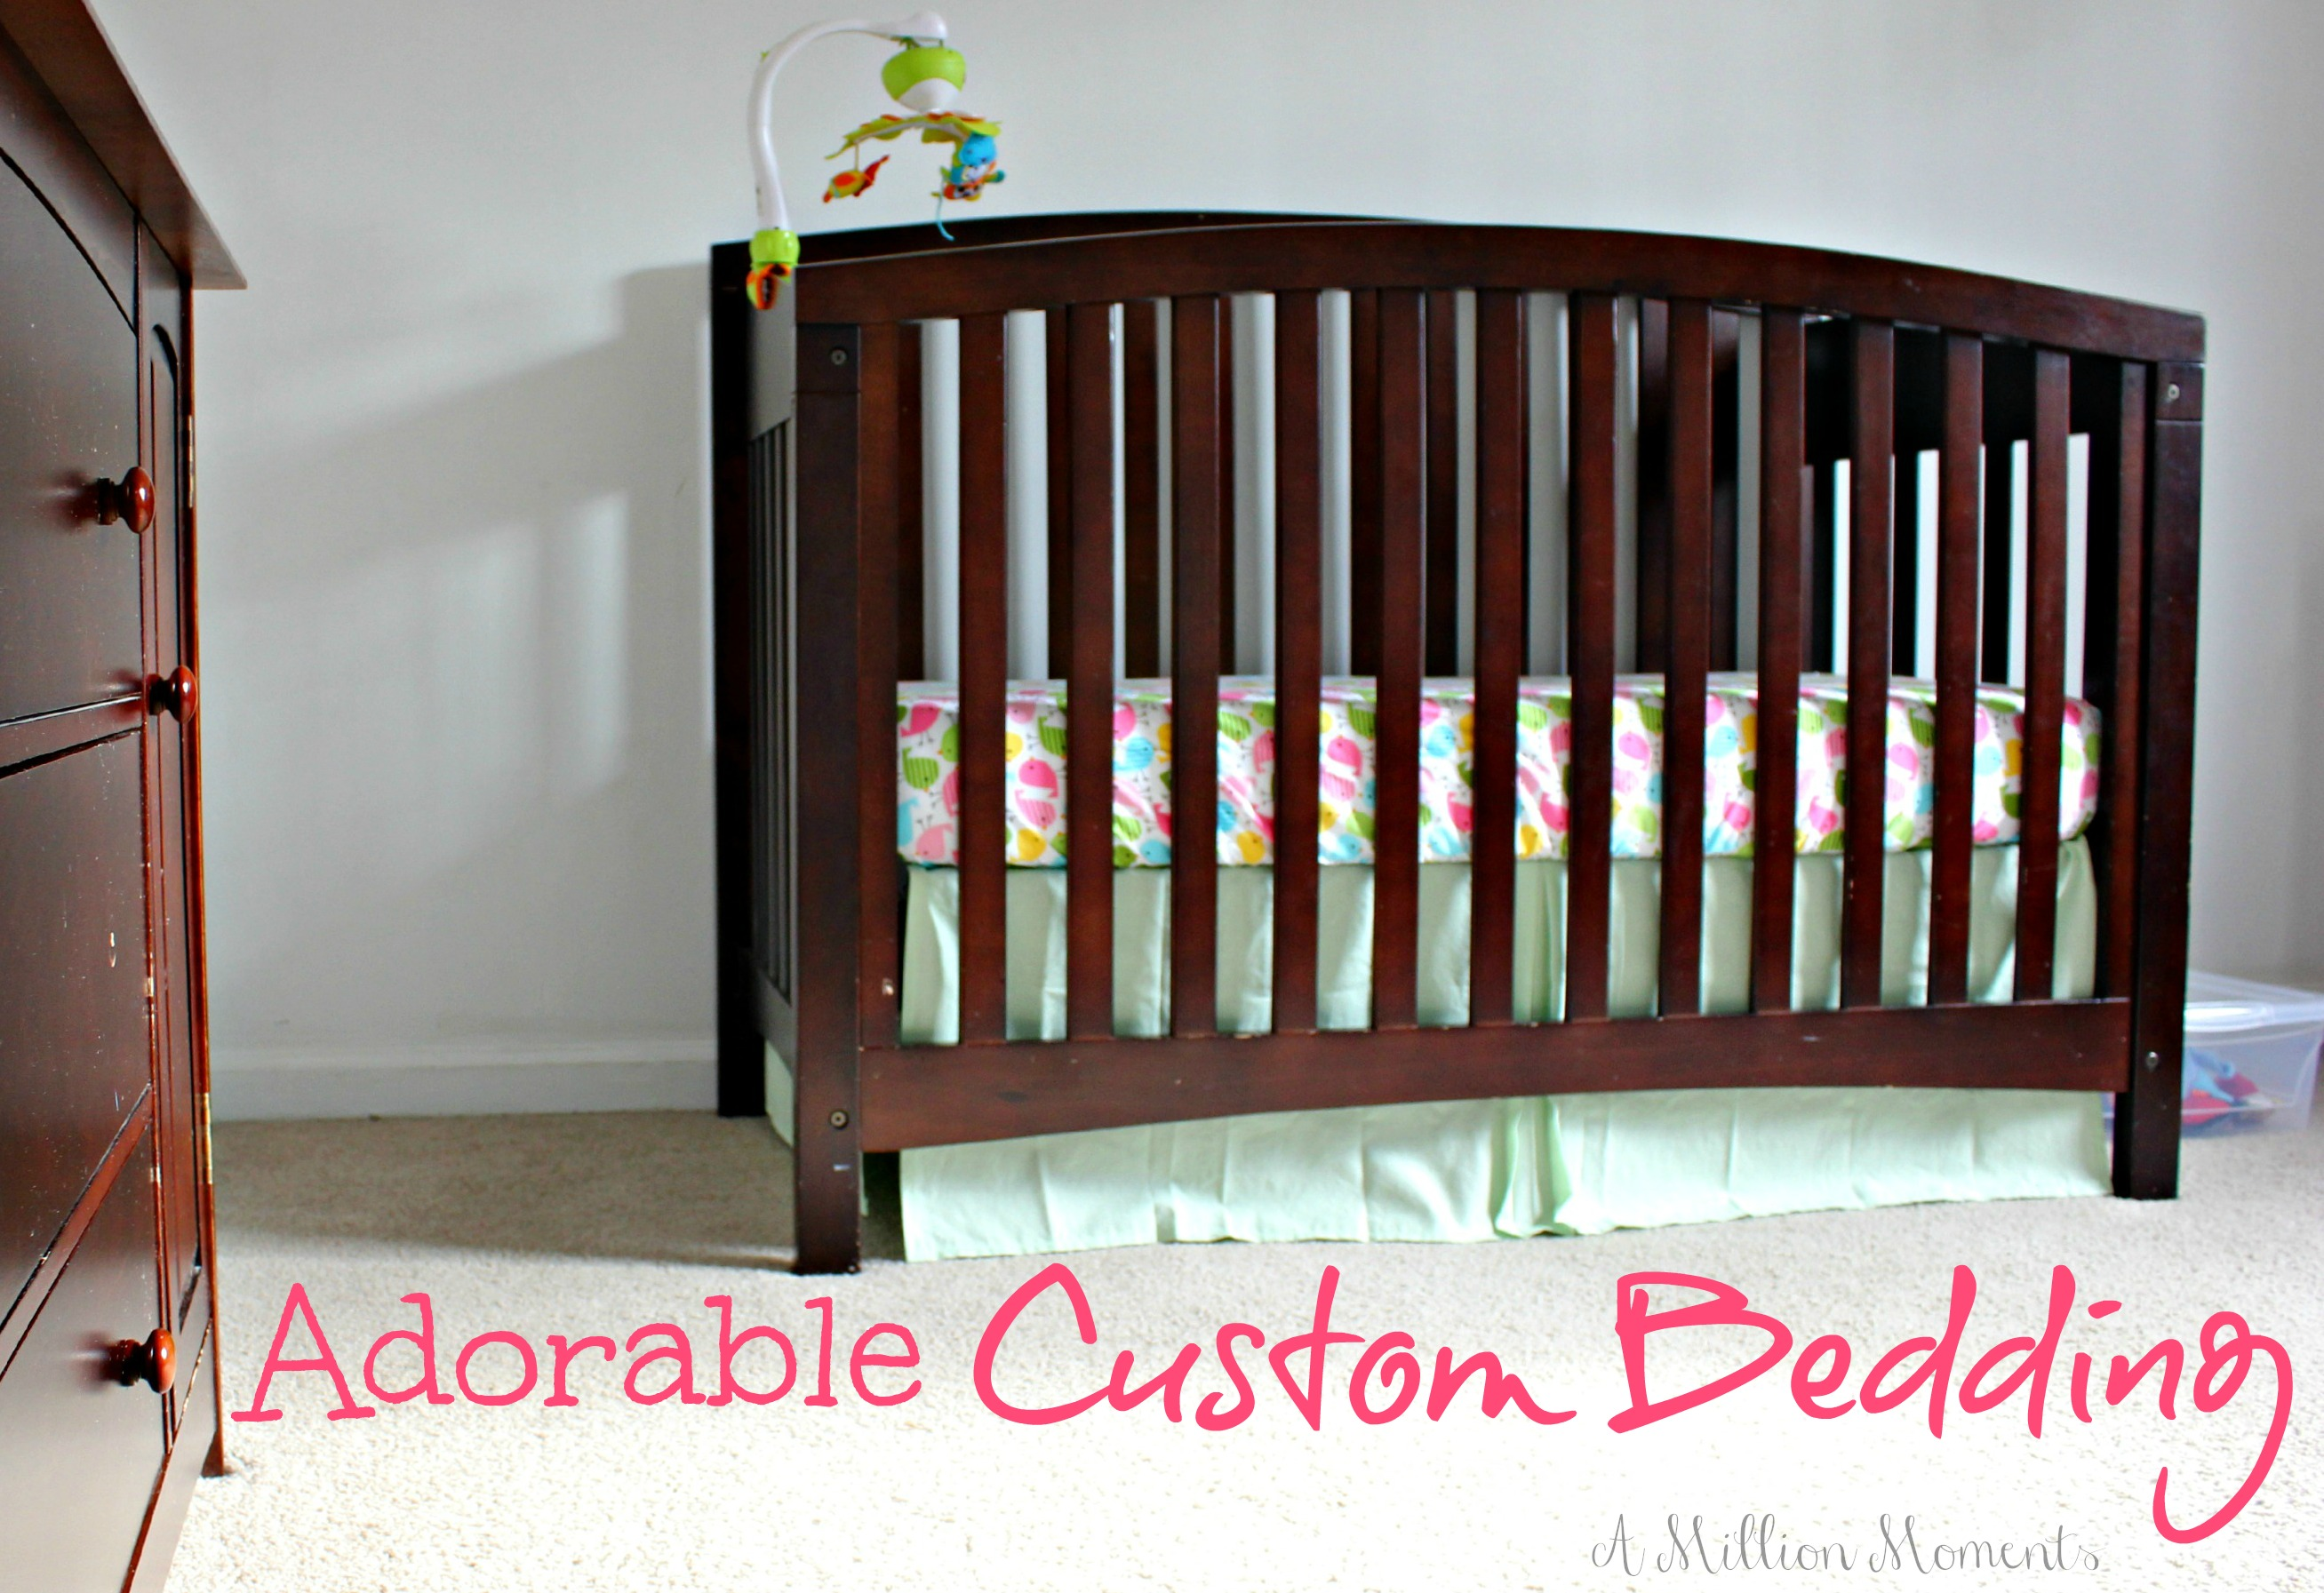 Custom Crib Bedding From Tigers Ties